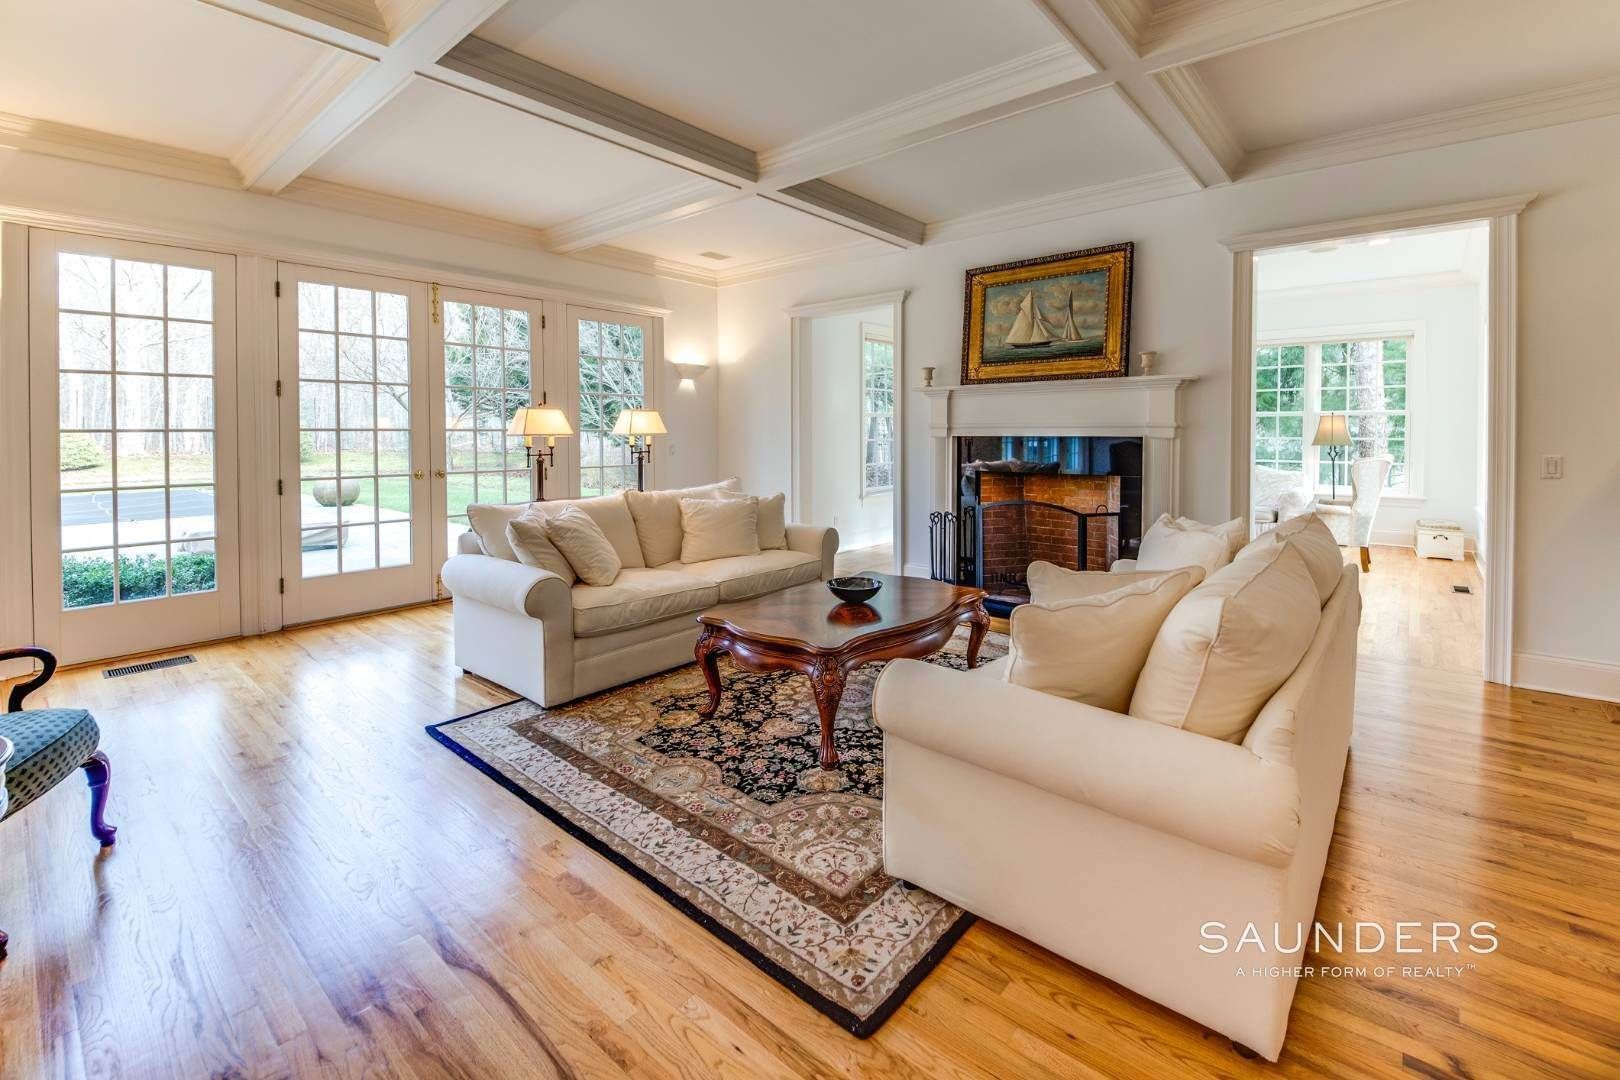 8. Single Family Homes for Sale at Builder's Own, Hamptons Traditional 33 Cedar Trails, East Hampton, East Hampton Town, NY 11937